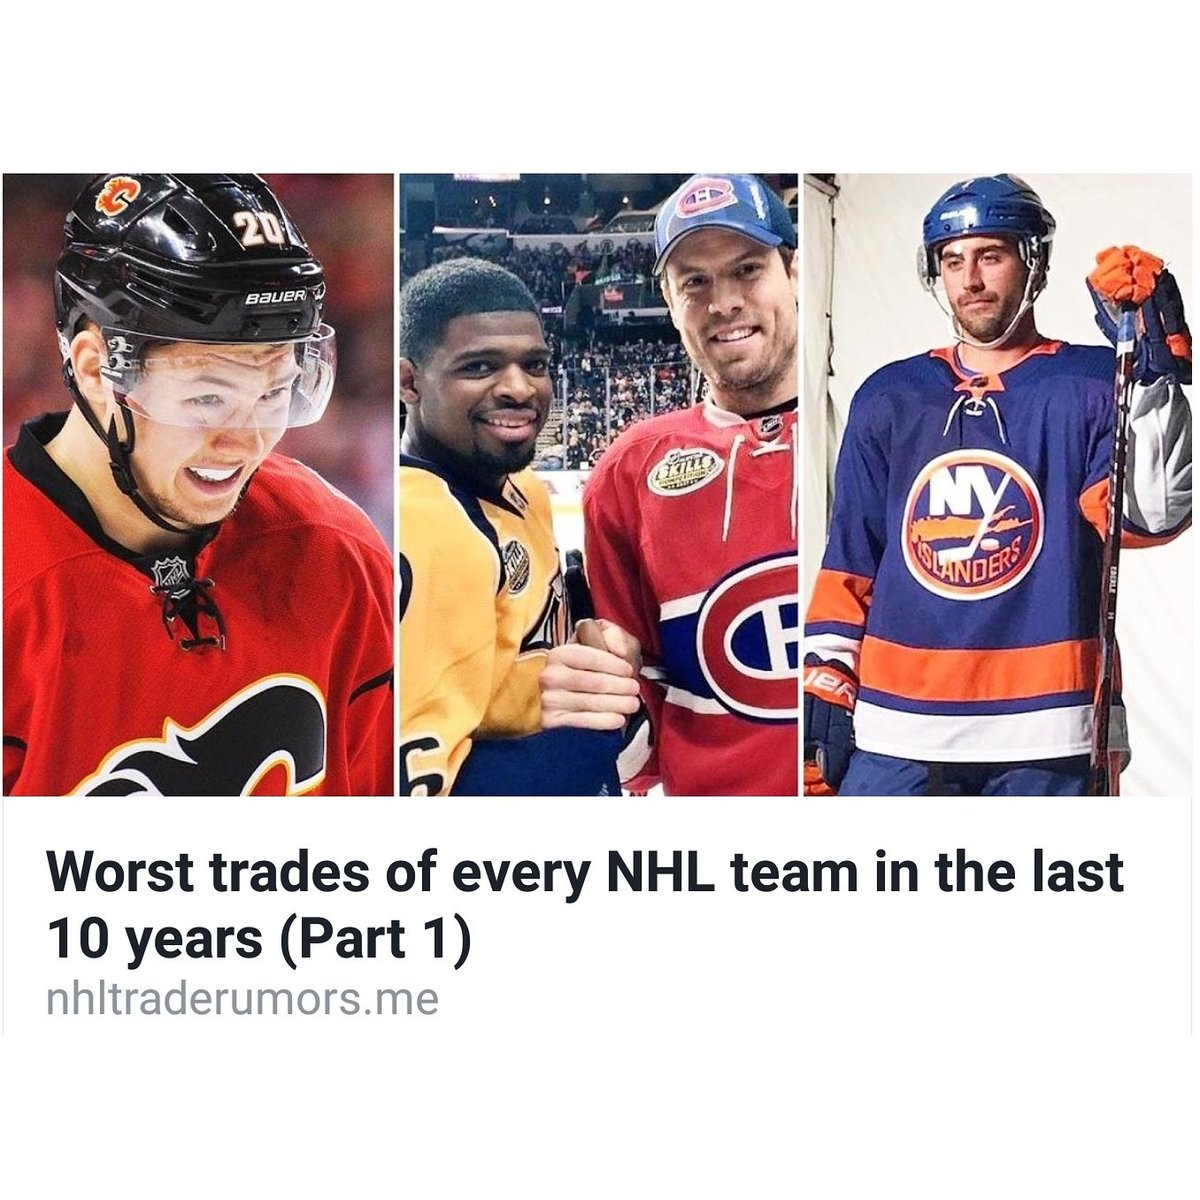 Worst Trades of Every #NHL Team in the Last 10 Years (Part 1) https://t.co/CJgop3BABP https://t.co/0aSUsIly7L